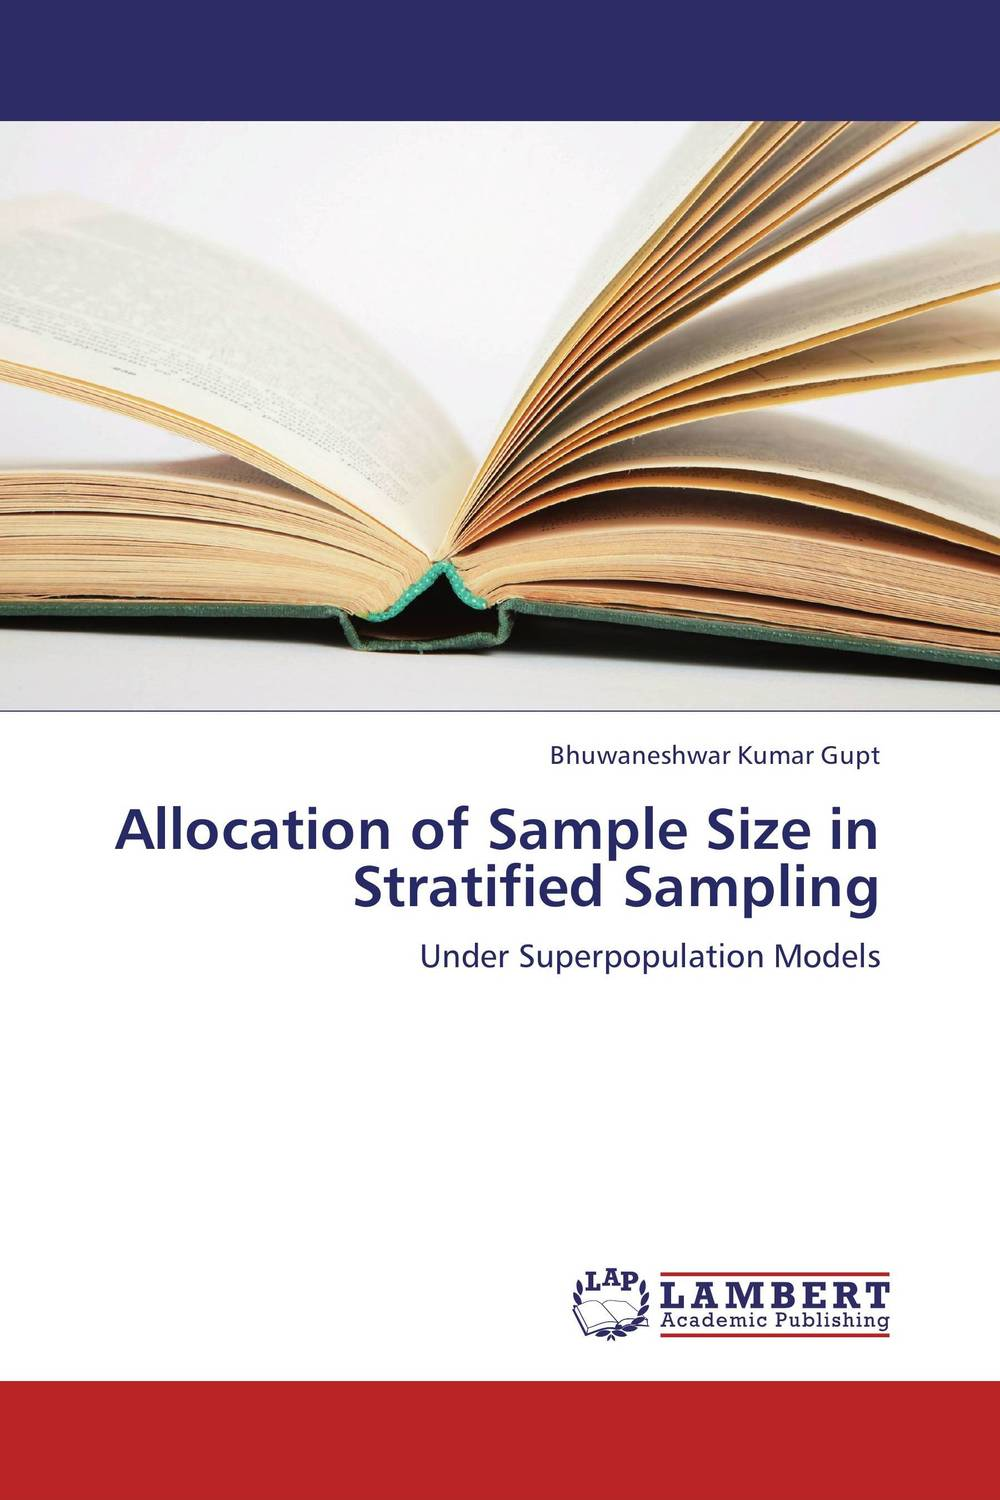 Allocation of Sample Size in Stratified Sampling educational resource allocation